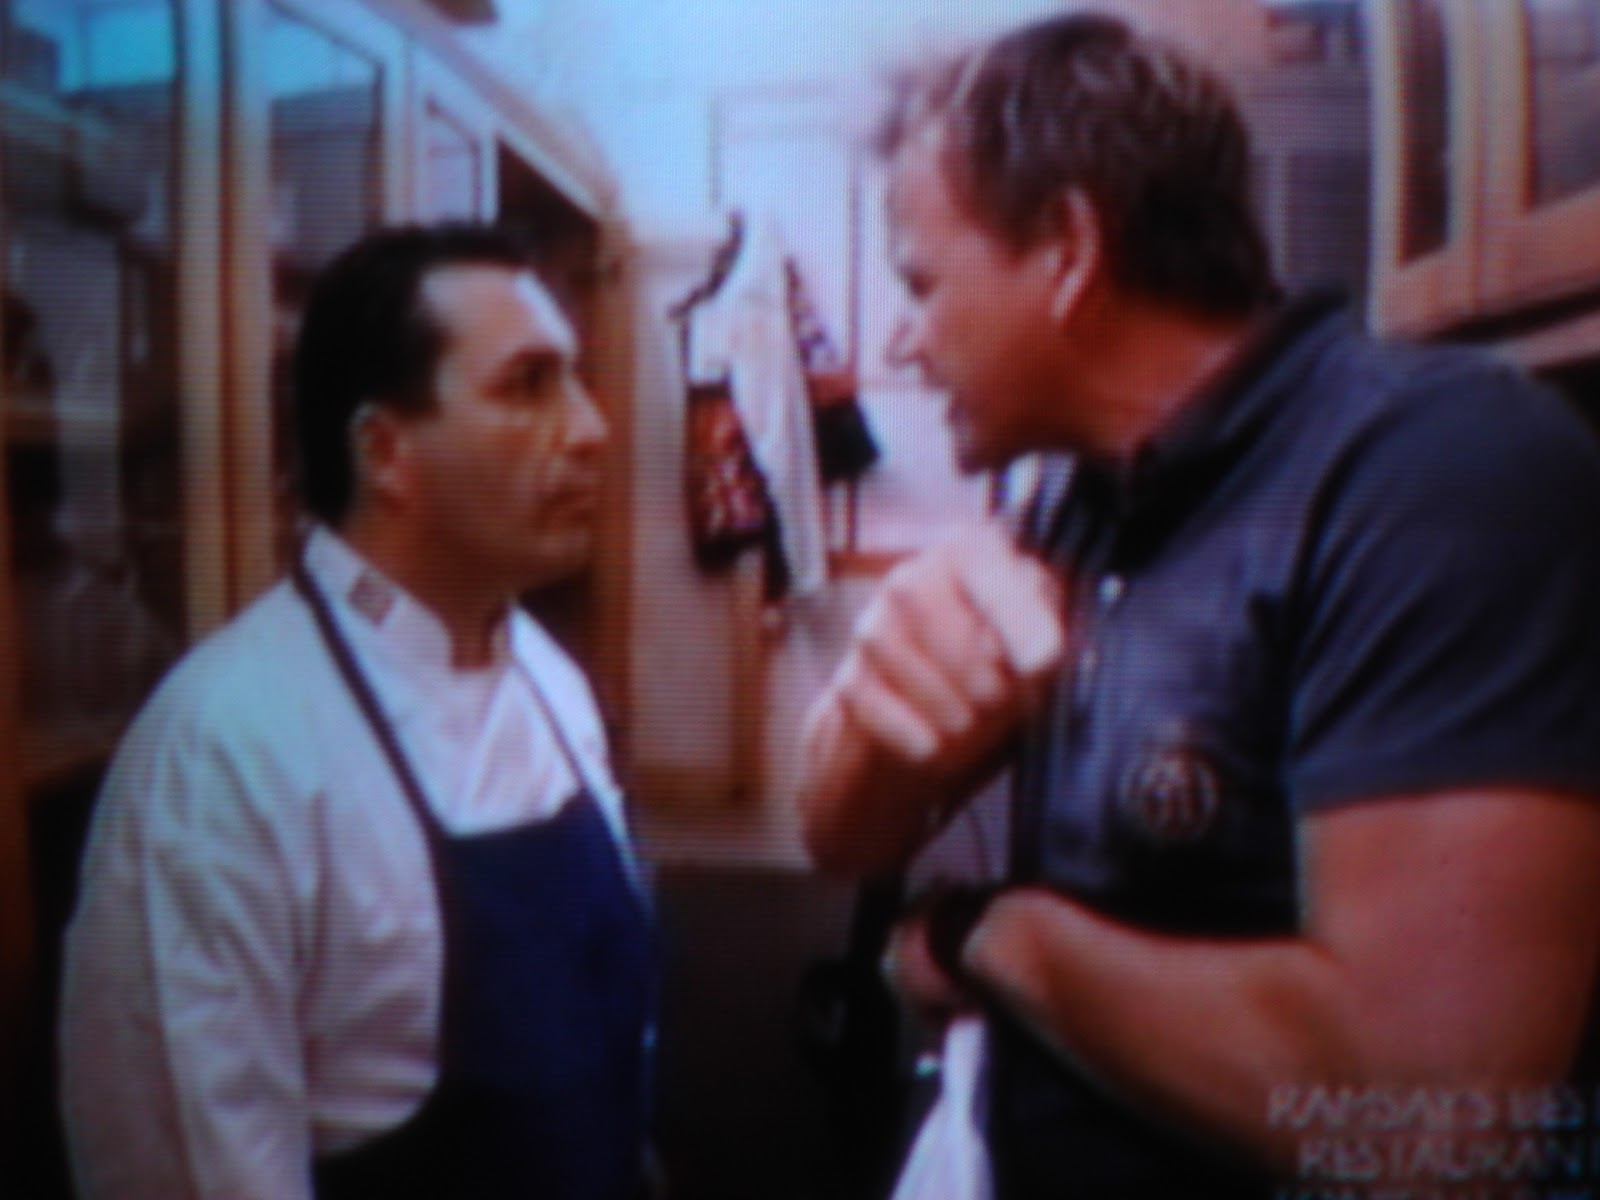 Gordon ramsay a new yorker with a brit accent The secret garden kitchen nightmares